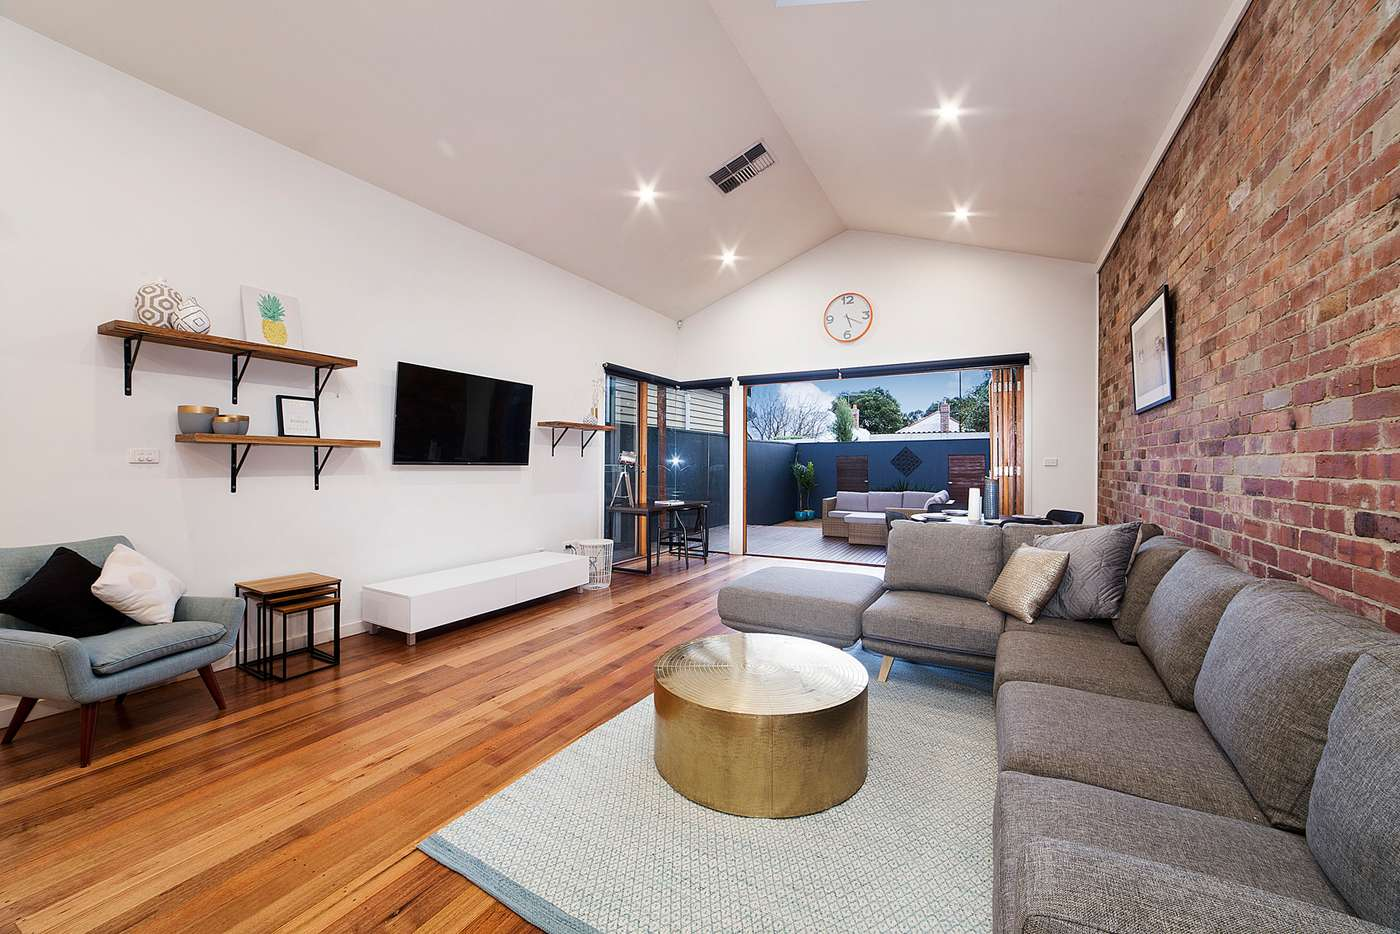 Main view of Homely house listing, 96 Pentland Parade, Yarraville VIC 3013